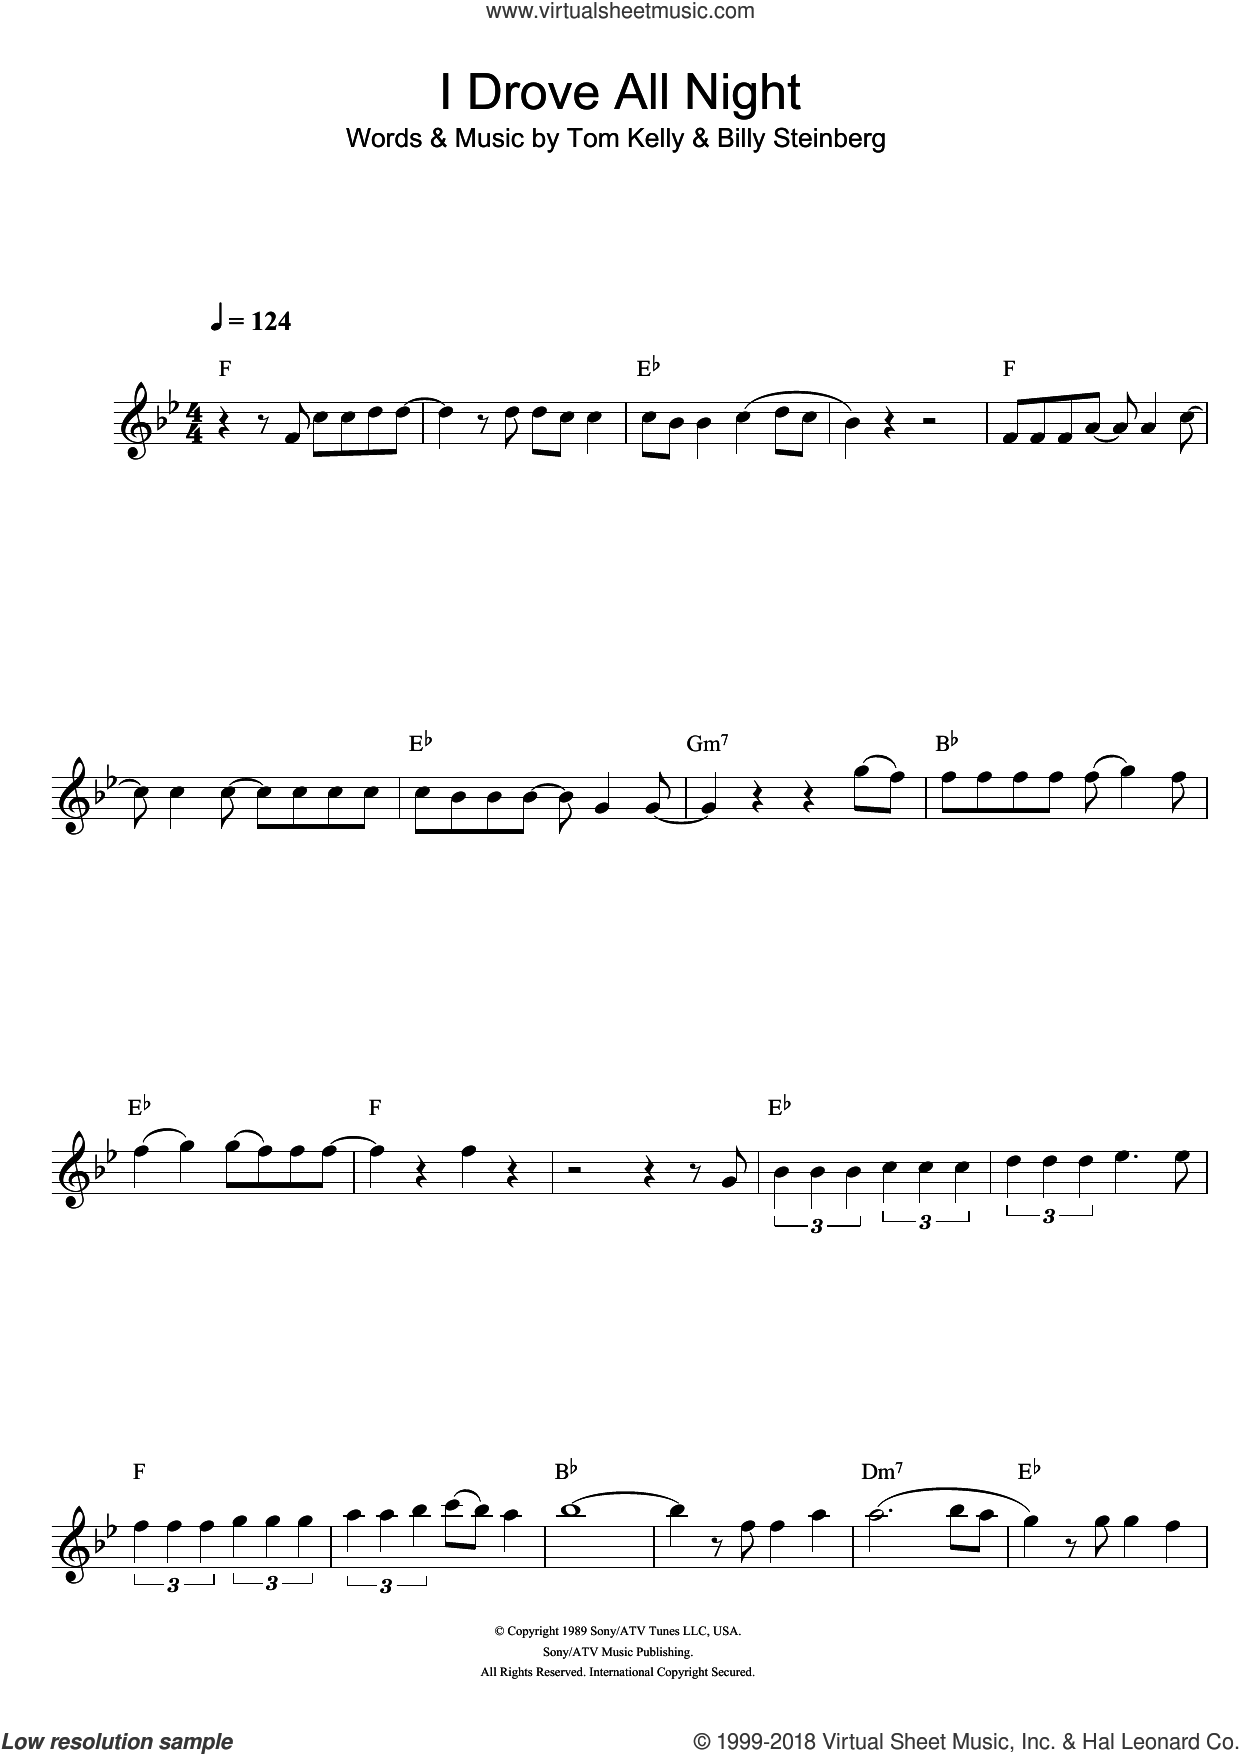 I Drove All Night sheet music for flute solo by Roy Orbison, Billy Steinberg and Tom Kelly, intermediate skill level